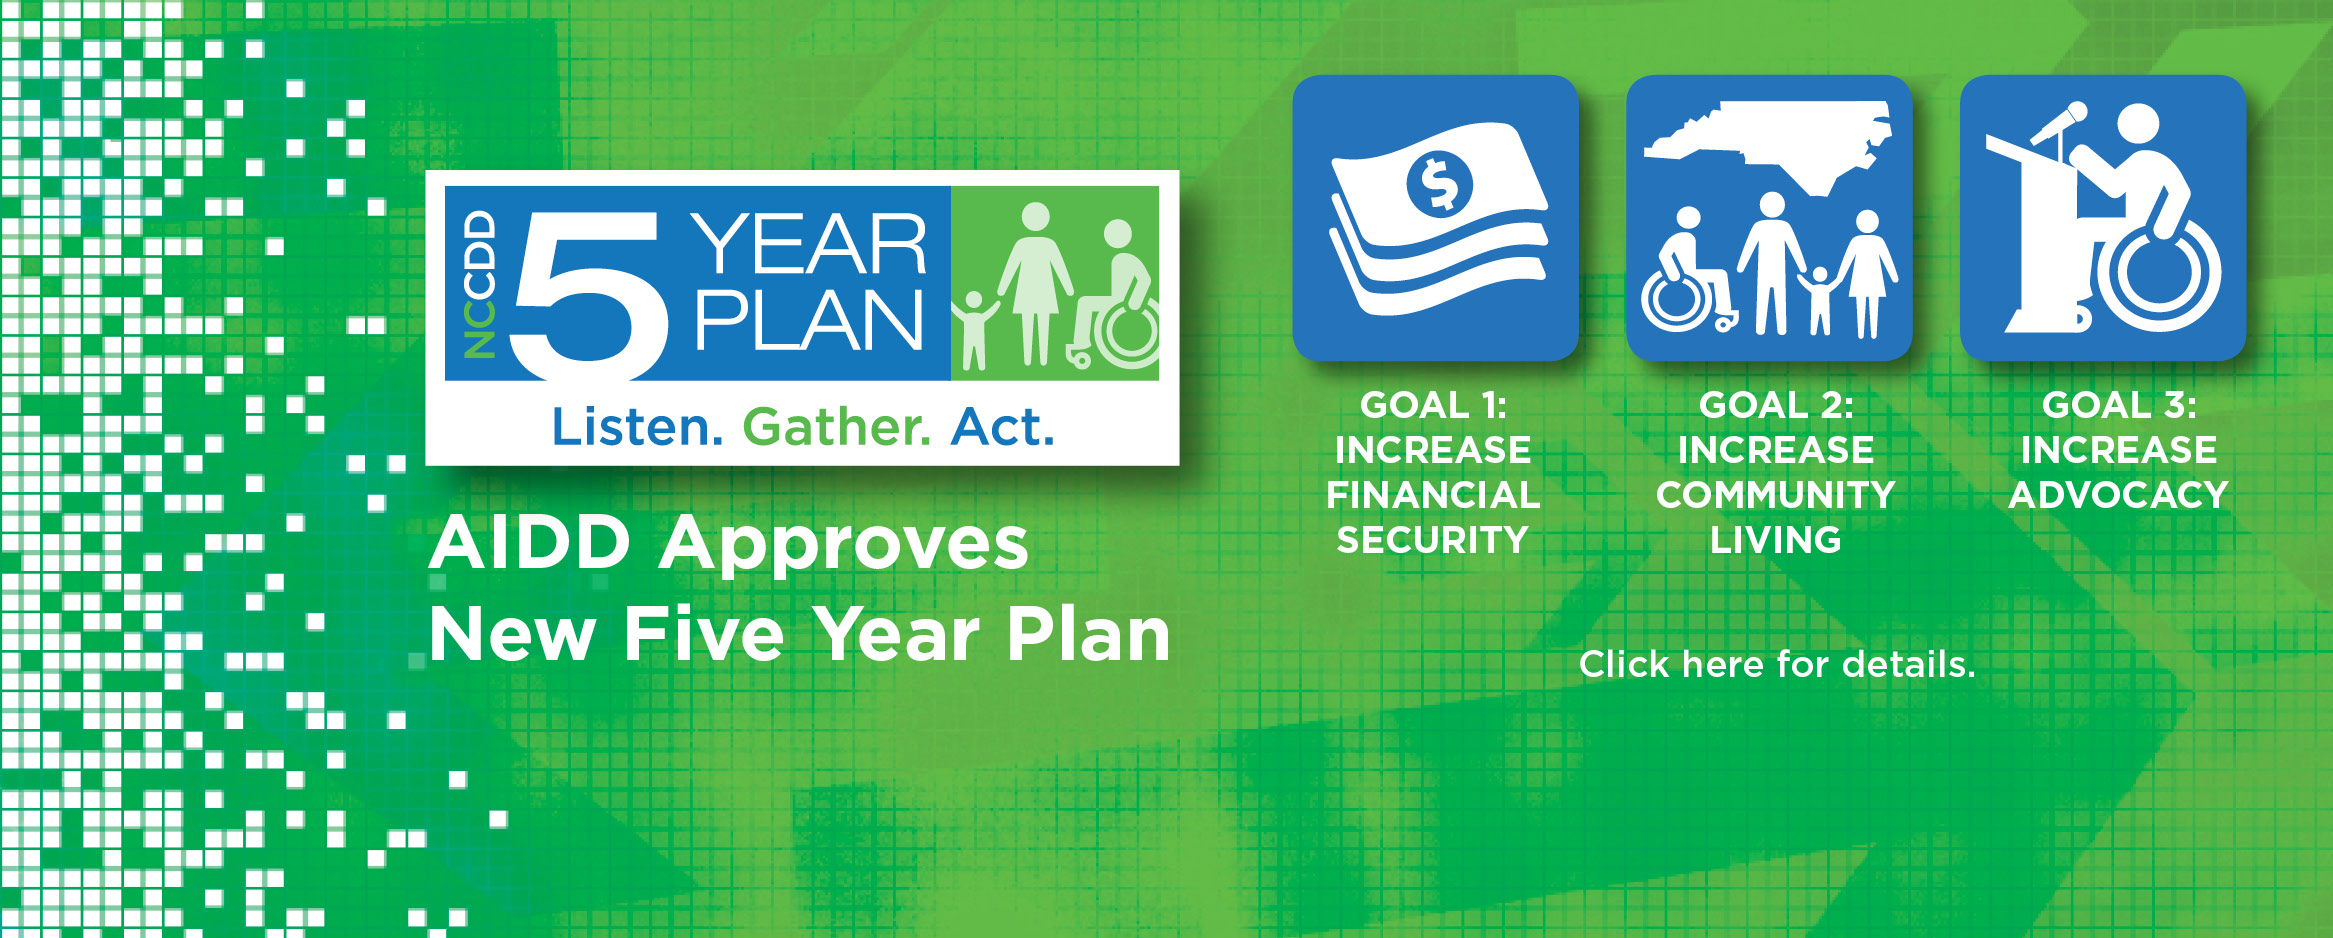 AIDD Approves New Five Year Plan